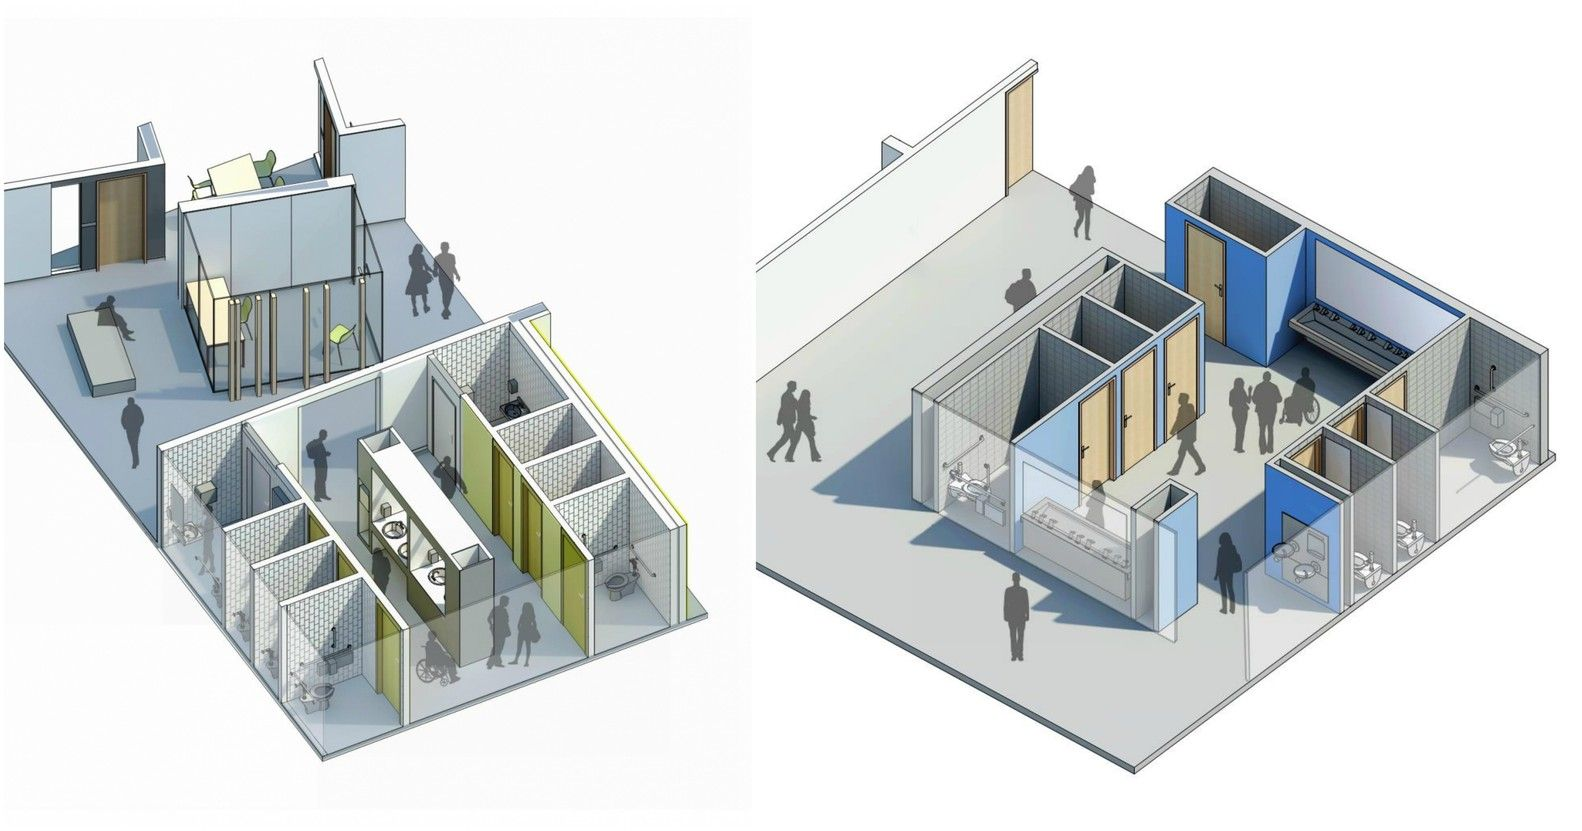 Gallery Of How To Design School Restrooms For Increased Comfort Safety And Gender Inclusivity 1 Restroom Design Neutral Bathrooms Designs Gender Neutral Bathrooms